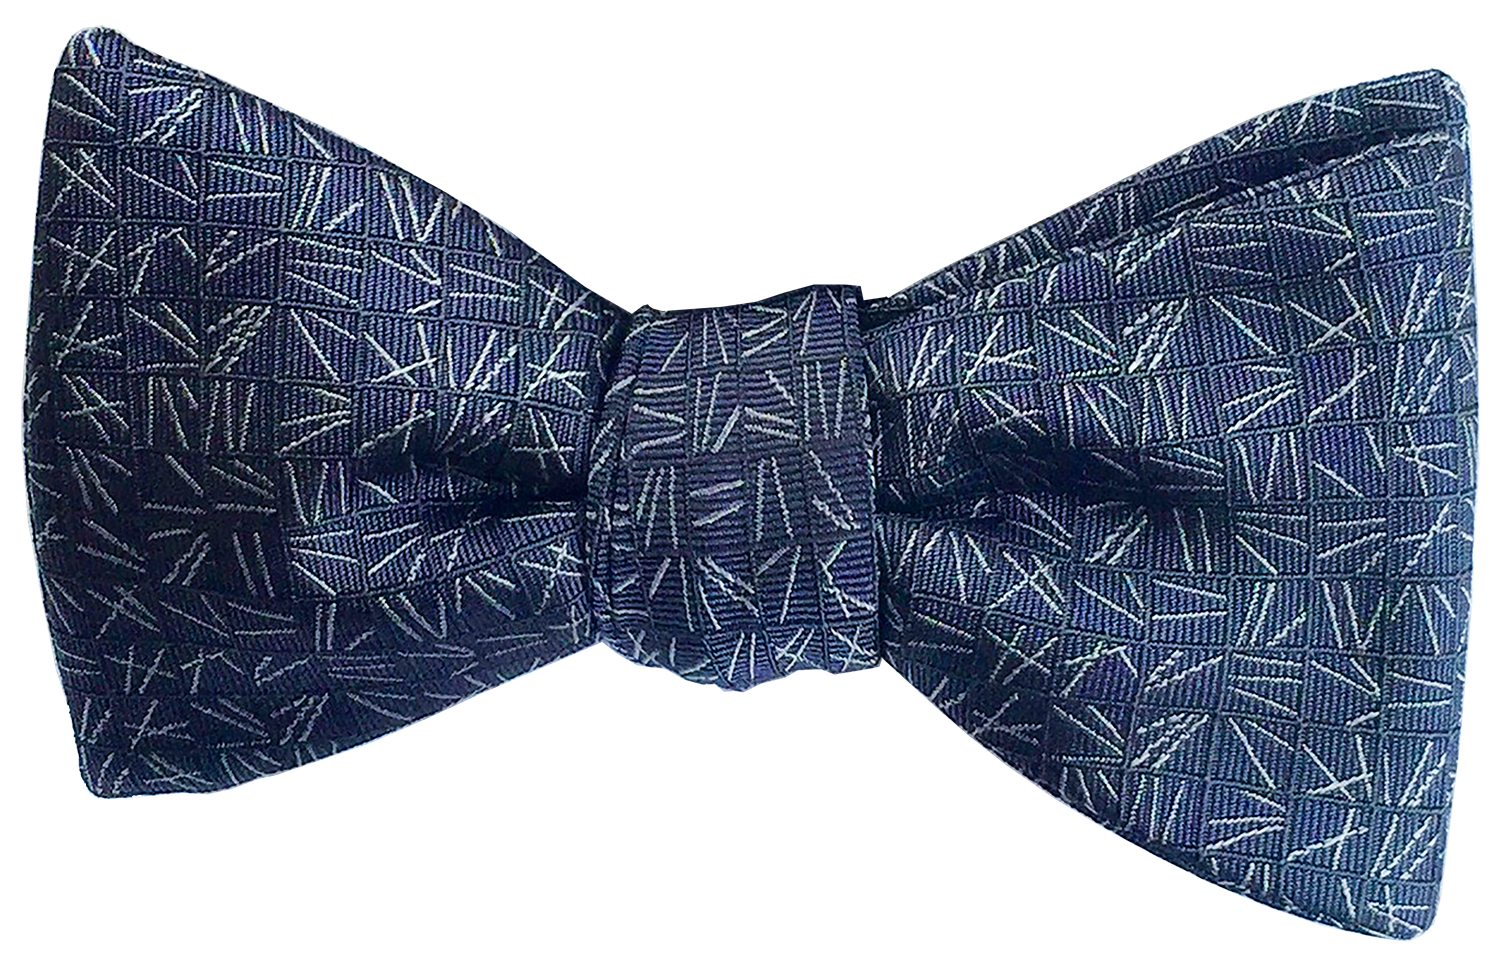 doppeldecker design designer aviation airplane aircraft silk bow tie bowtie scattering pine